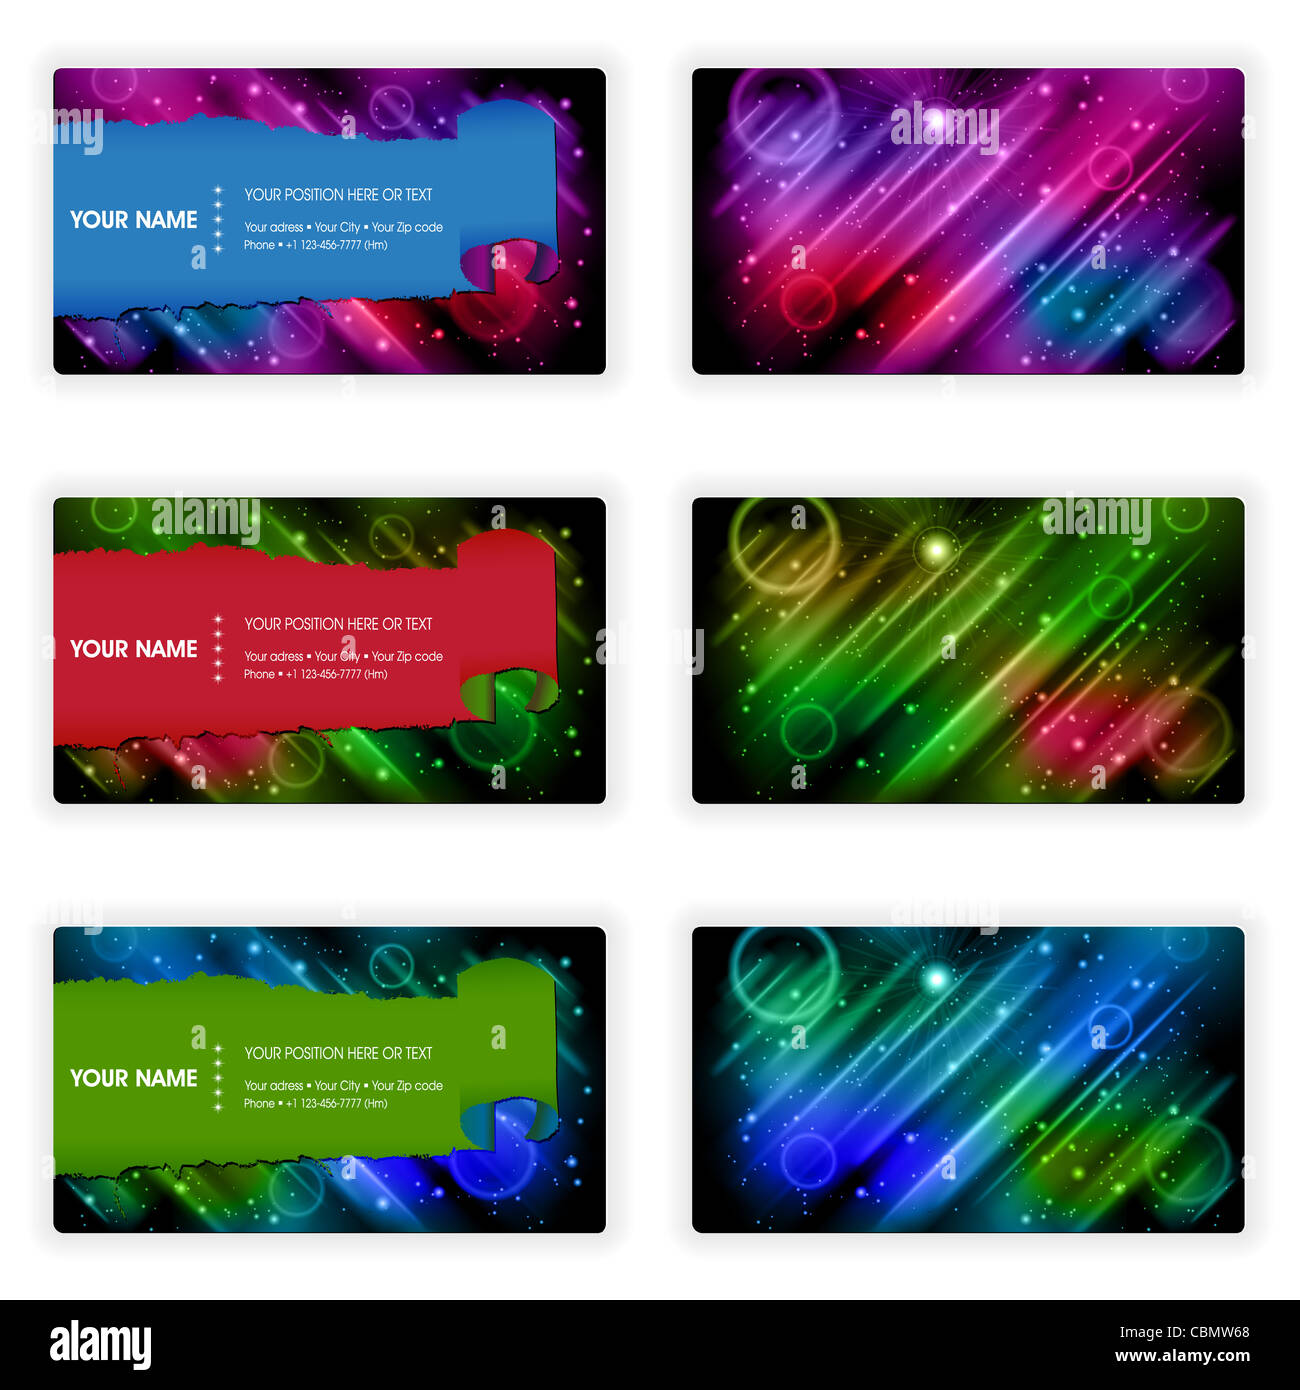 Collect Business Cards with aurora borealis in Different Colors, element for design, vector illustration - Stock Image